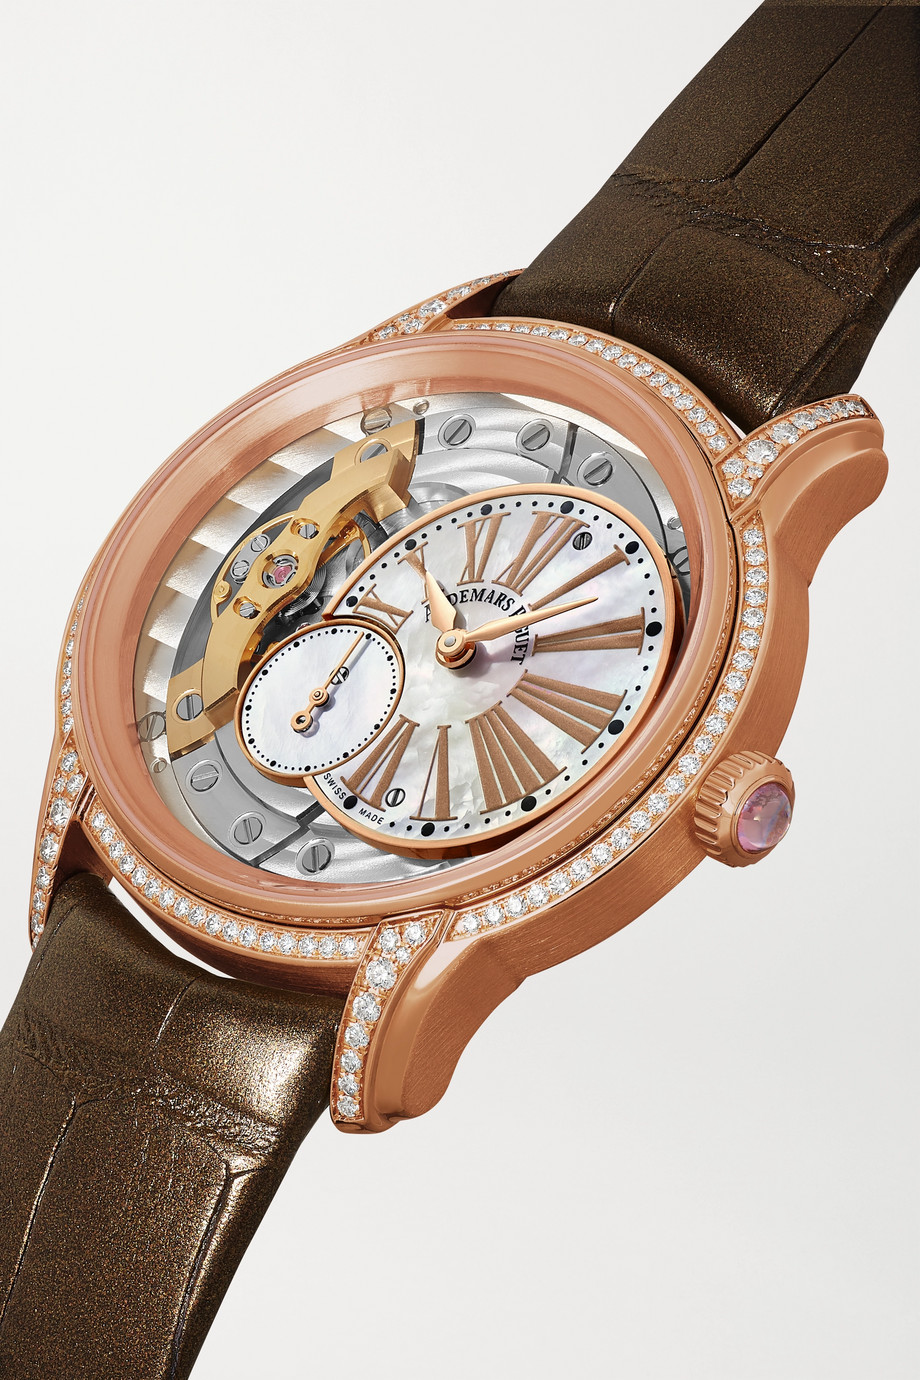 Audemars Piguet Millenary 39.5mm 18-karat pink gold, alligator, diamond and mother-of-pearl watch